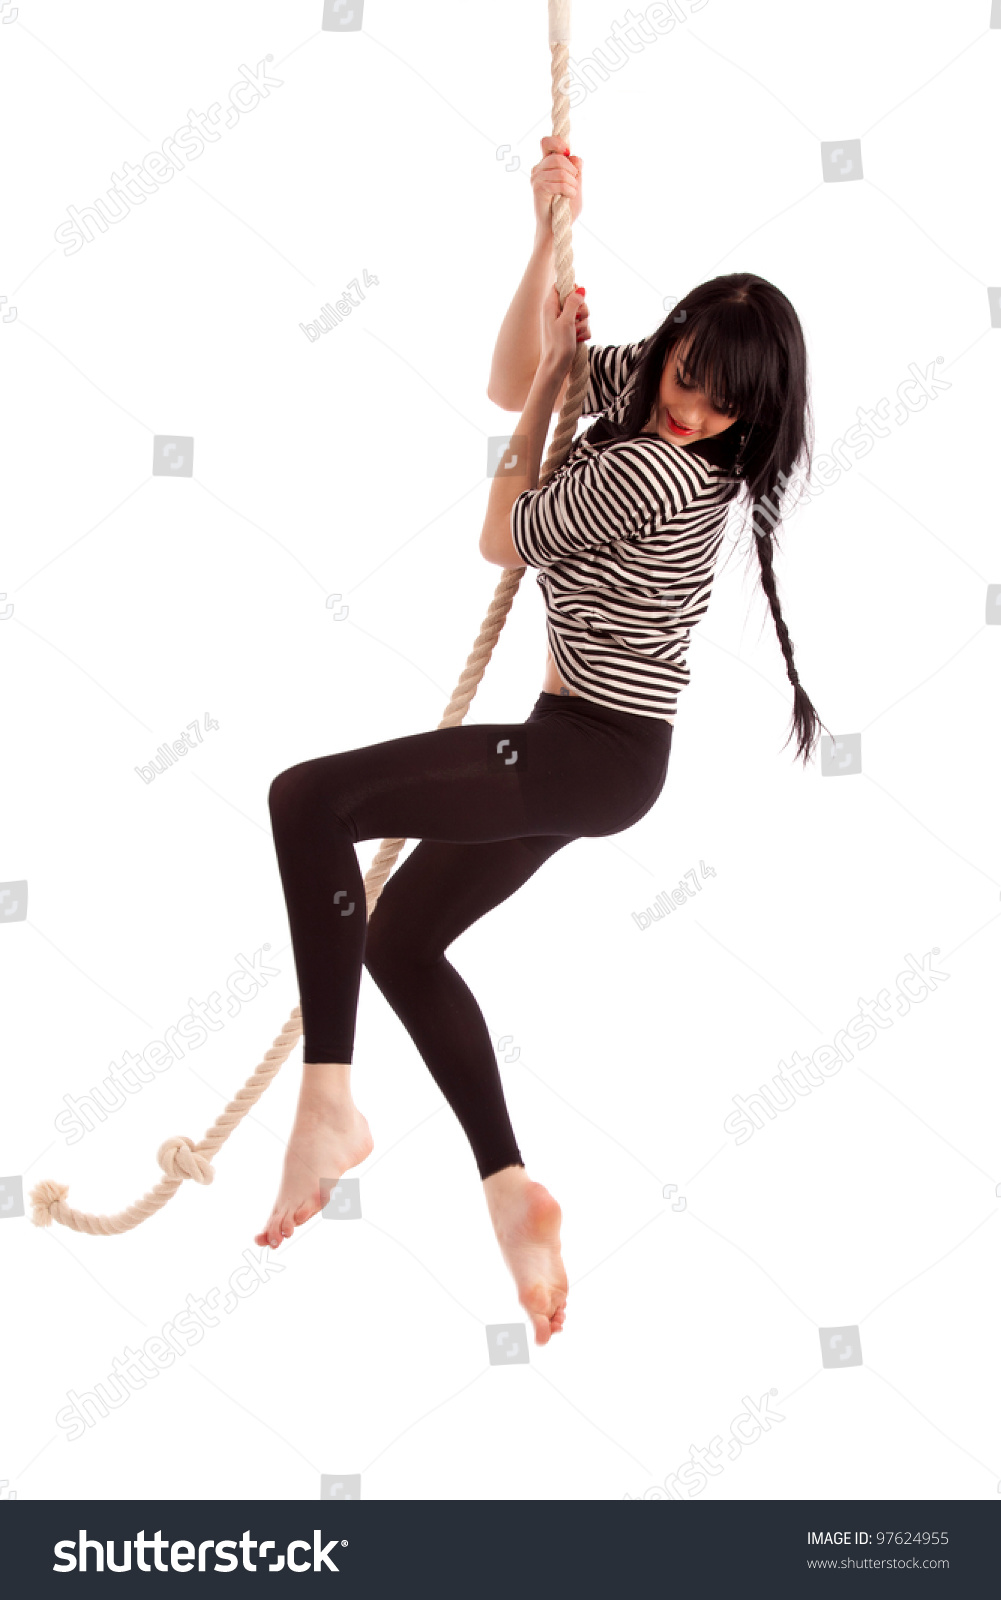 Boy and girl swinging on a rope